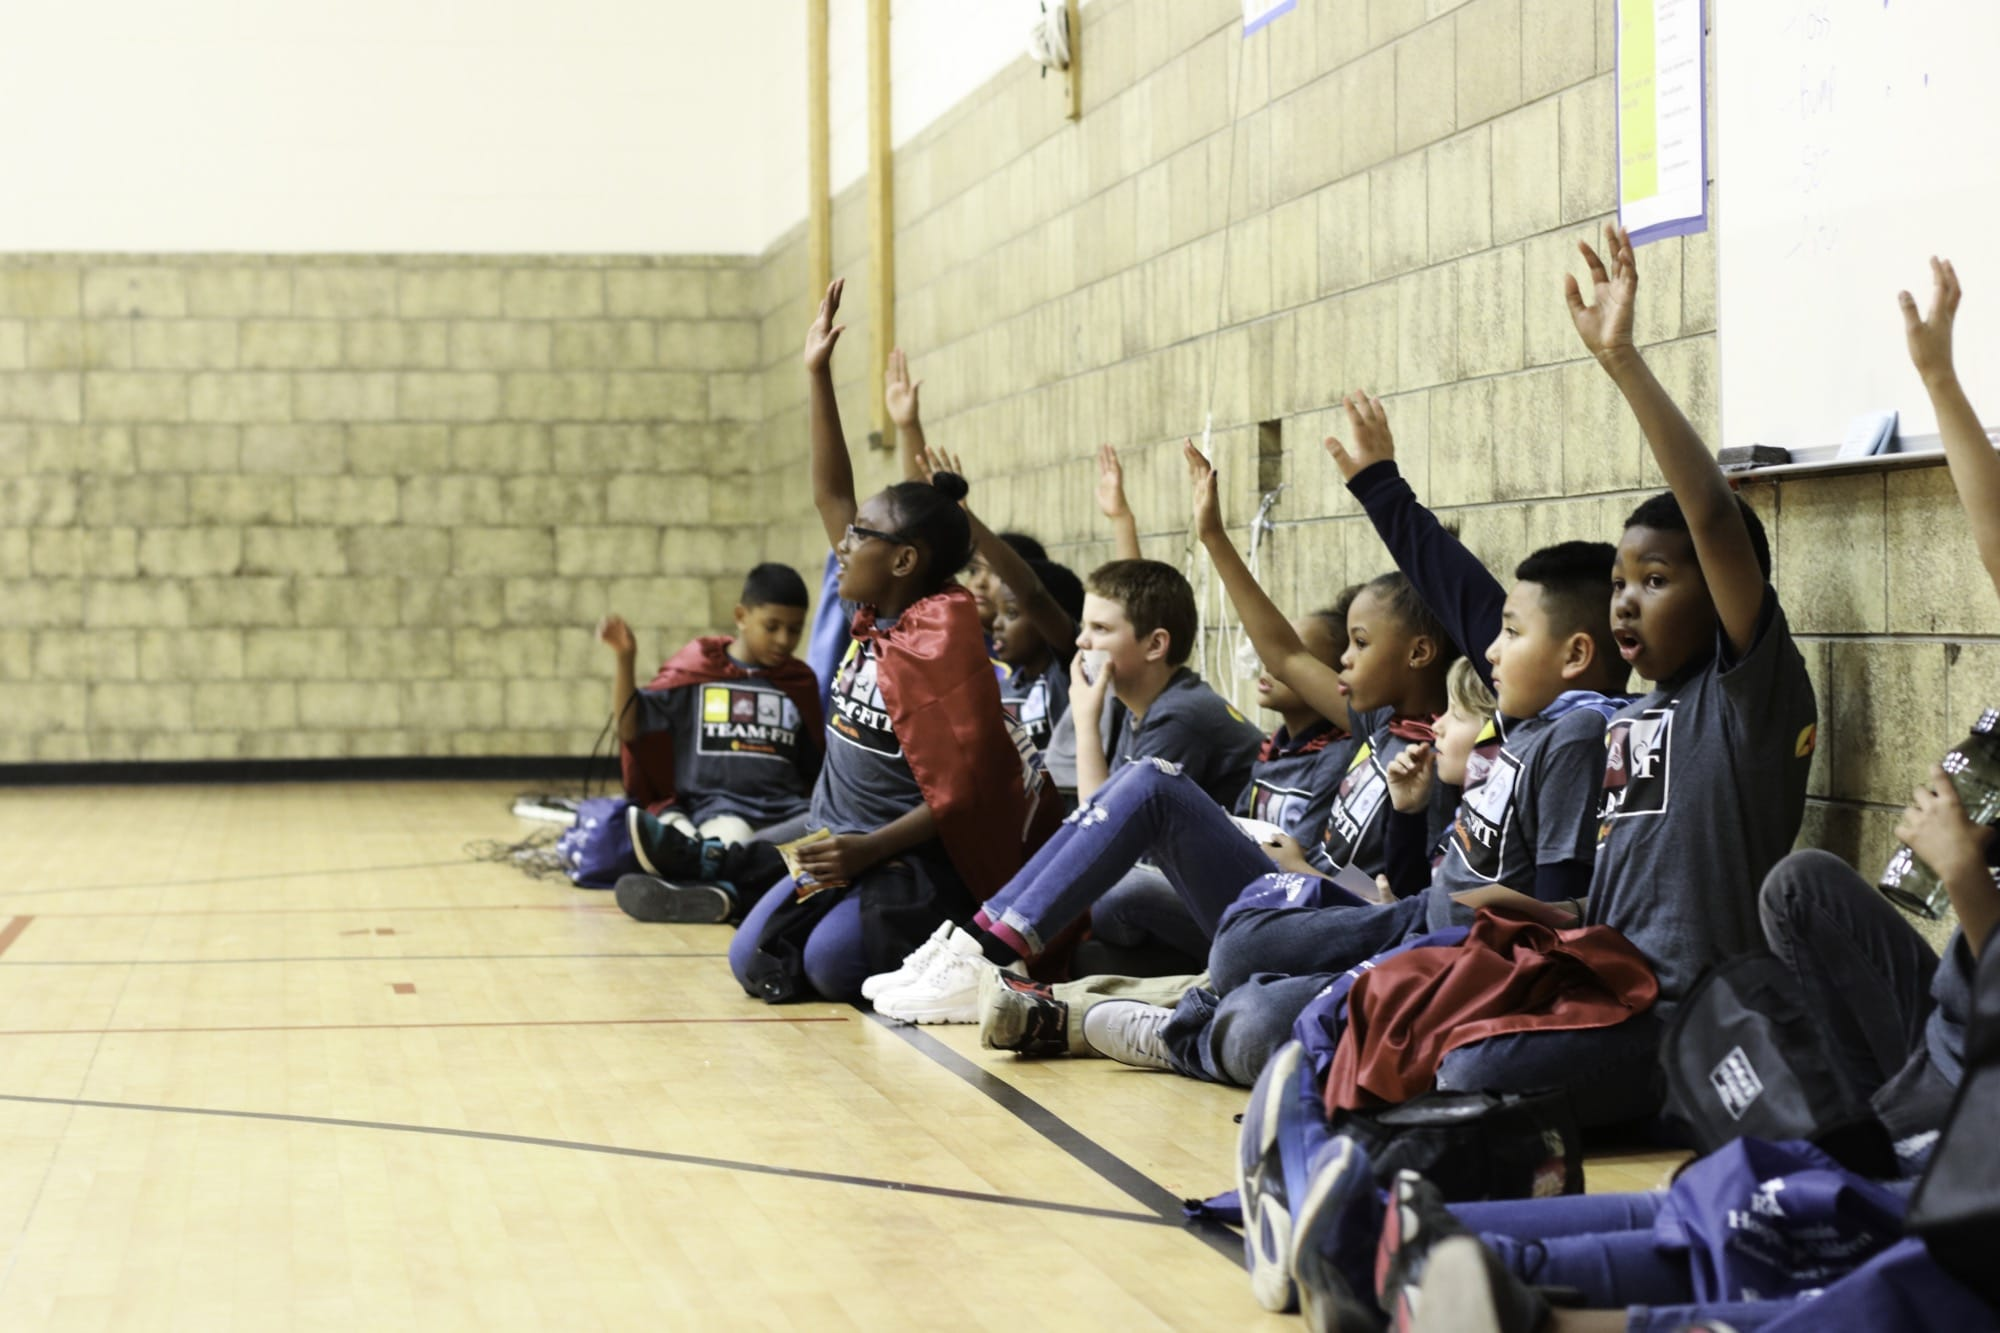 Students sitting again the wall on the floor of a gymnasium, raising their hands excitedly